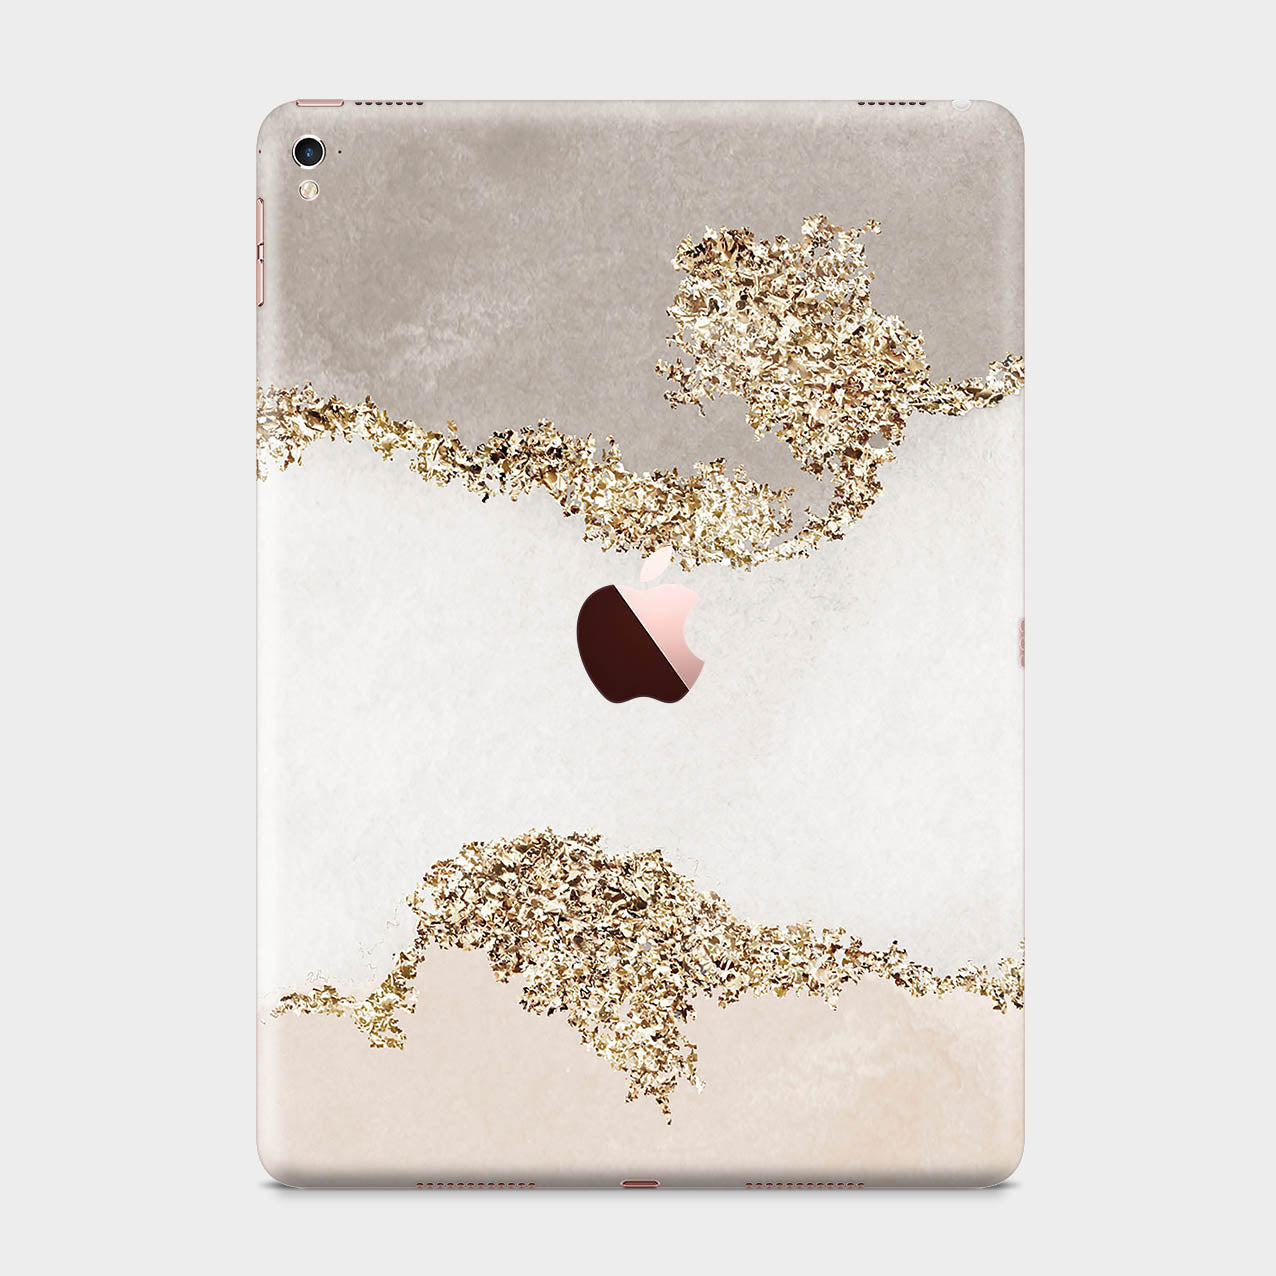 GOLDEN COAST iPad 3 skins | Pigtou